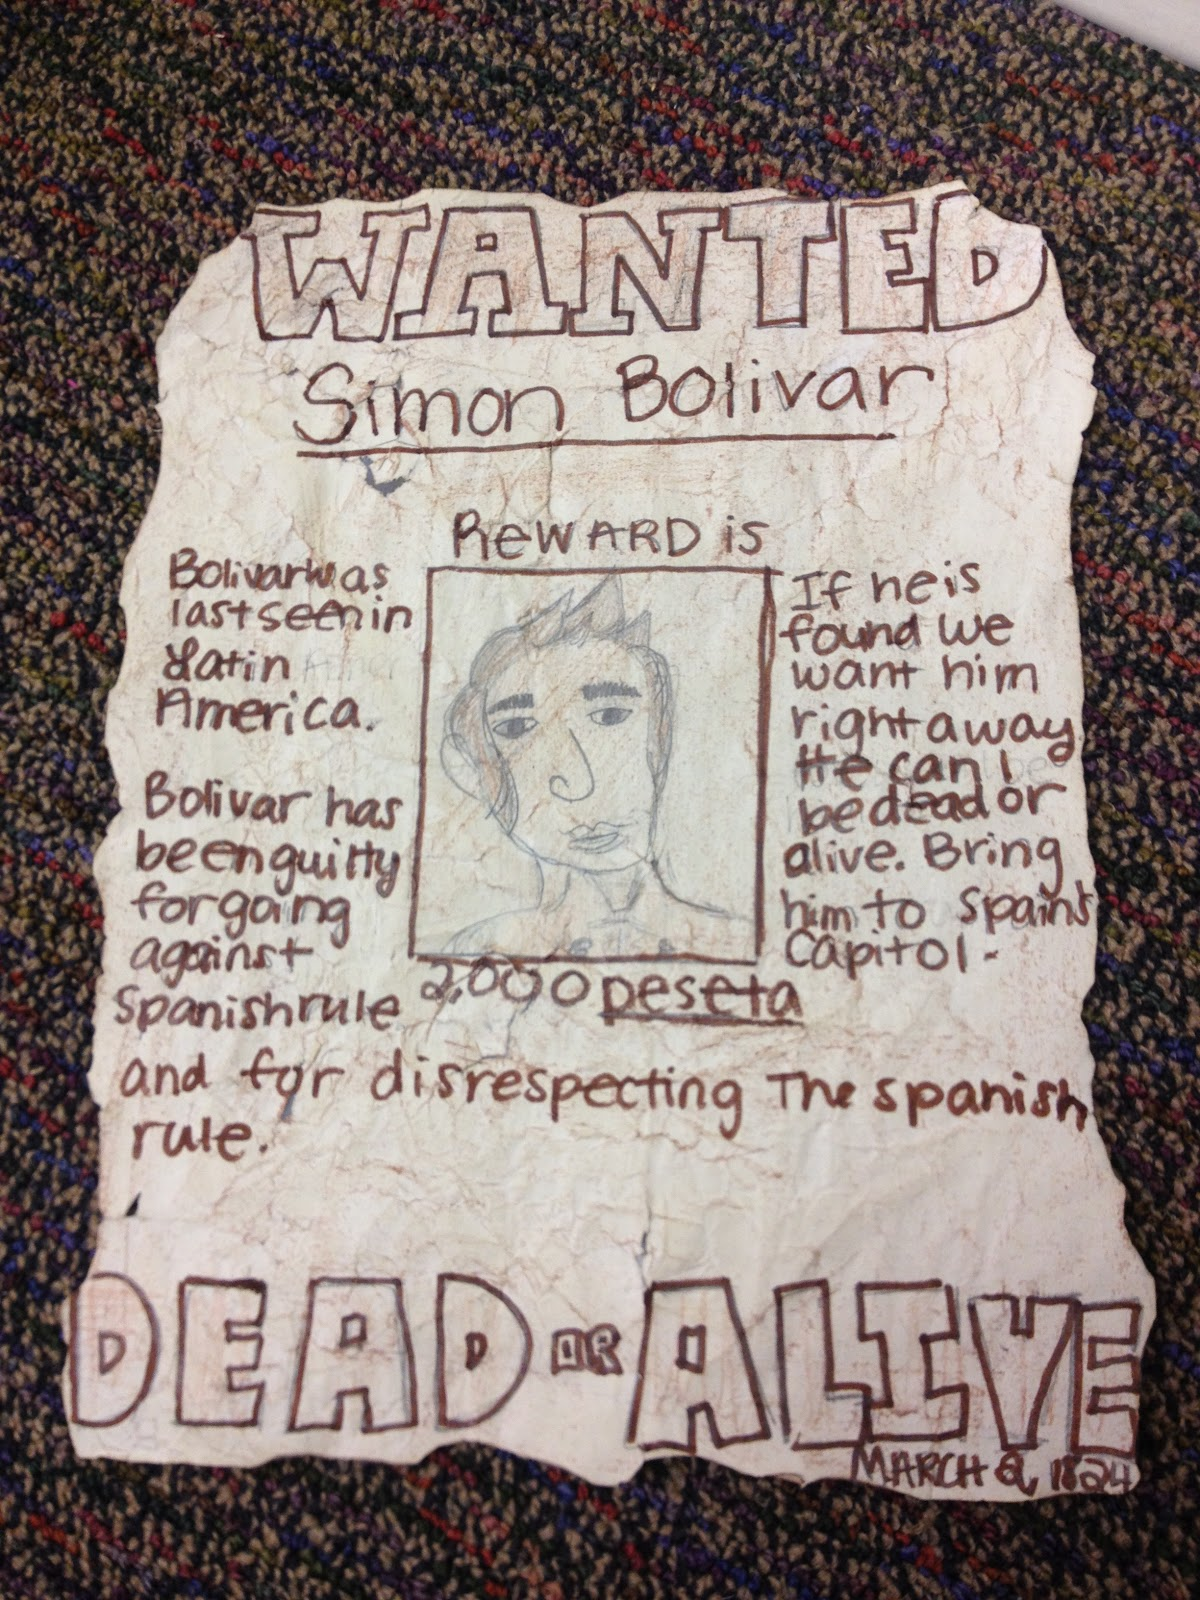 As A Fun Twist Ive Hung Bunch Up All Over The School So Theyre Like Real Wanted Posters Be On Lookout